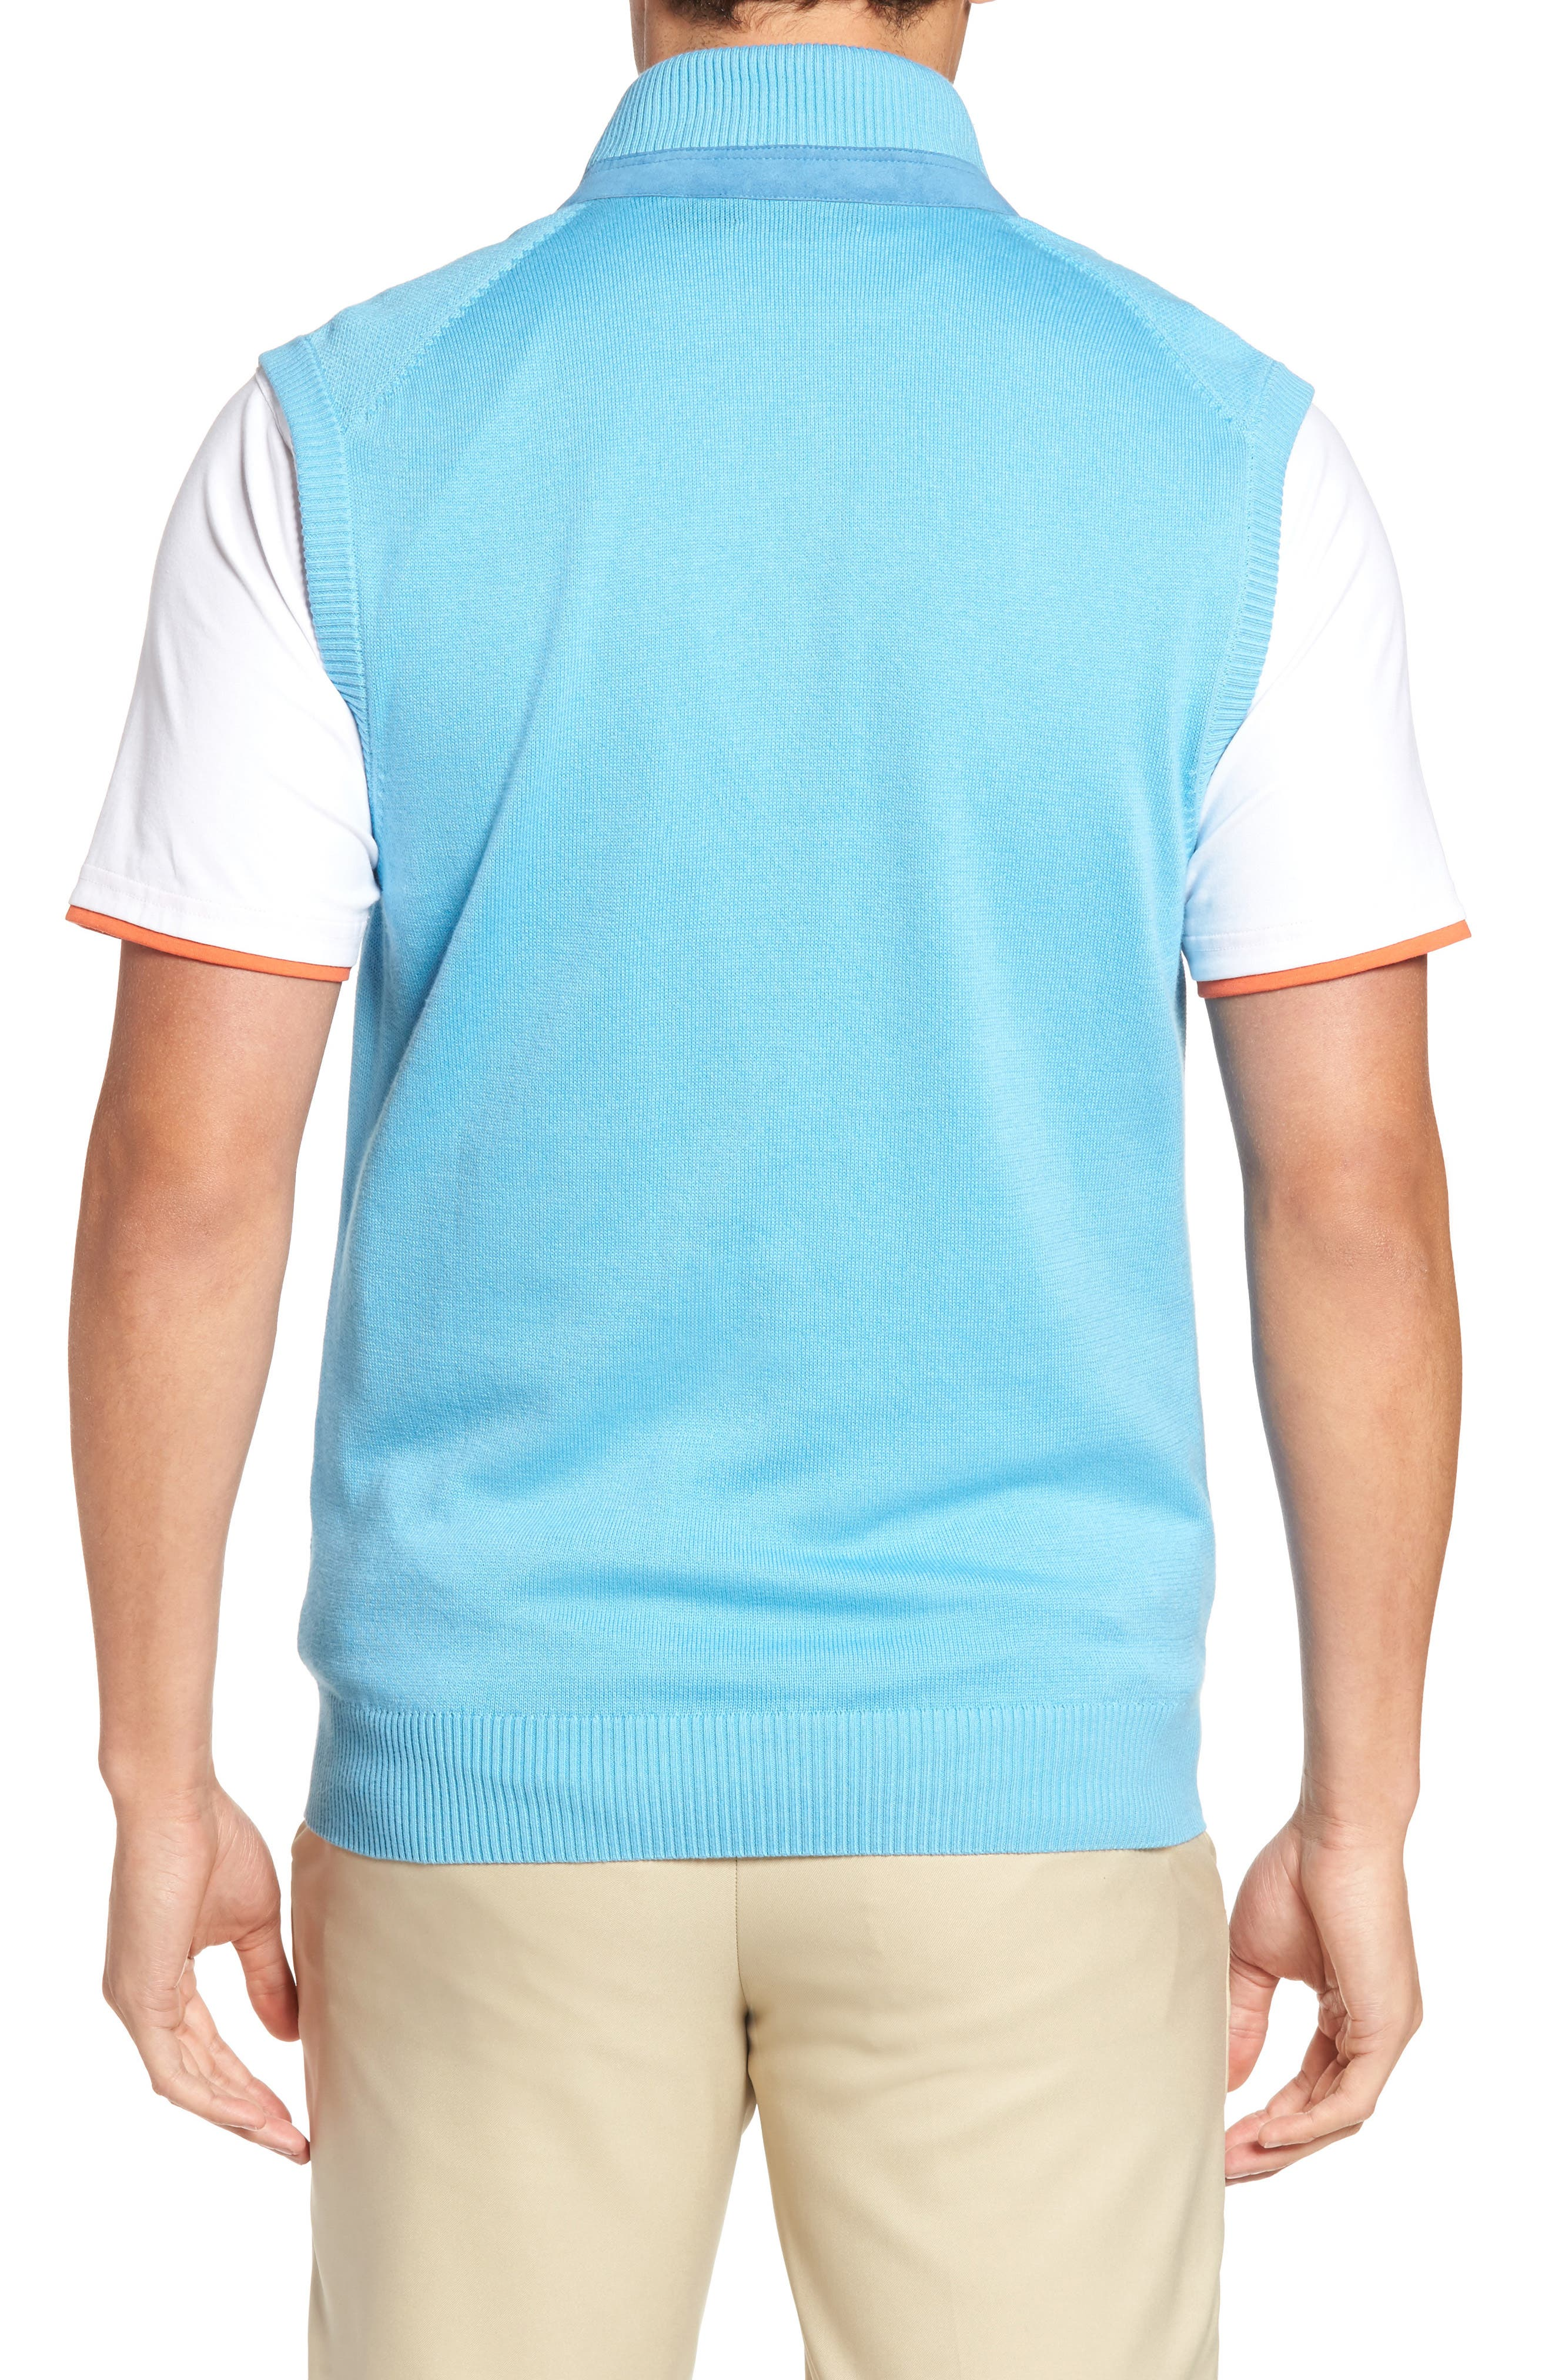 Alternate Image 2  - Bobby Jones Piqué Jersey Quarter Zip Golf Vest